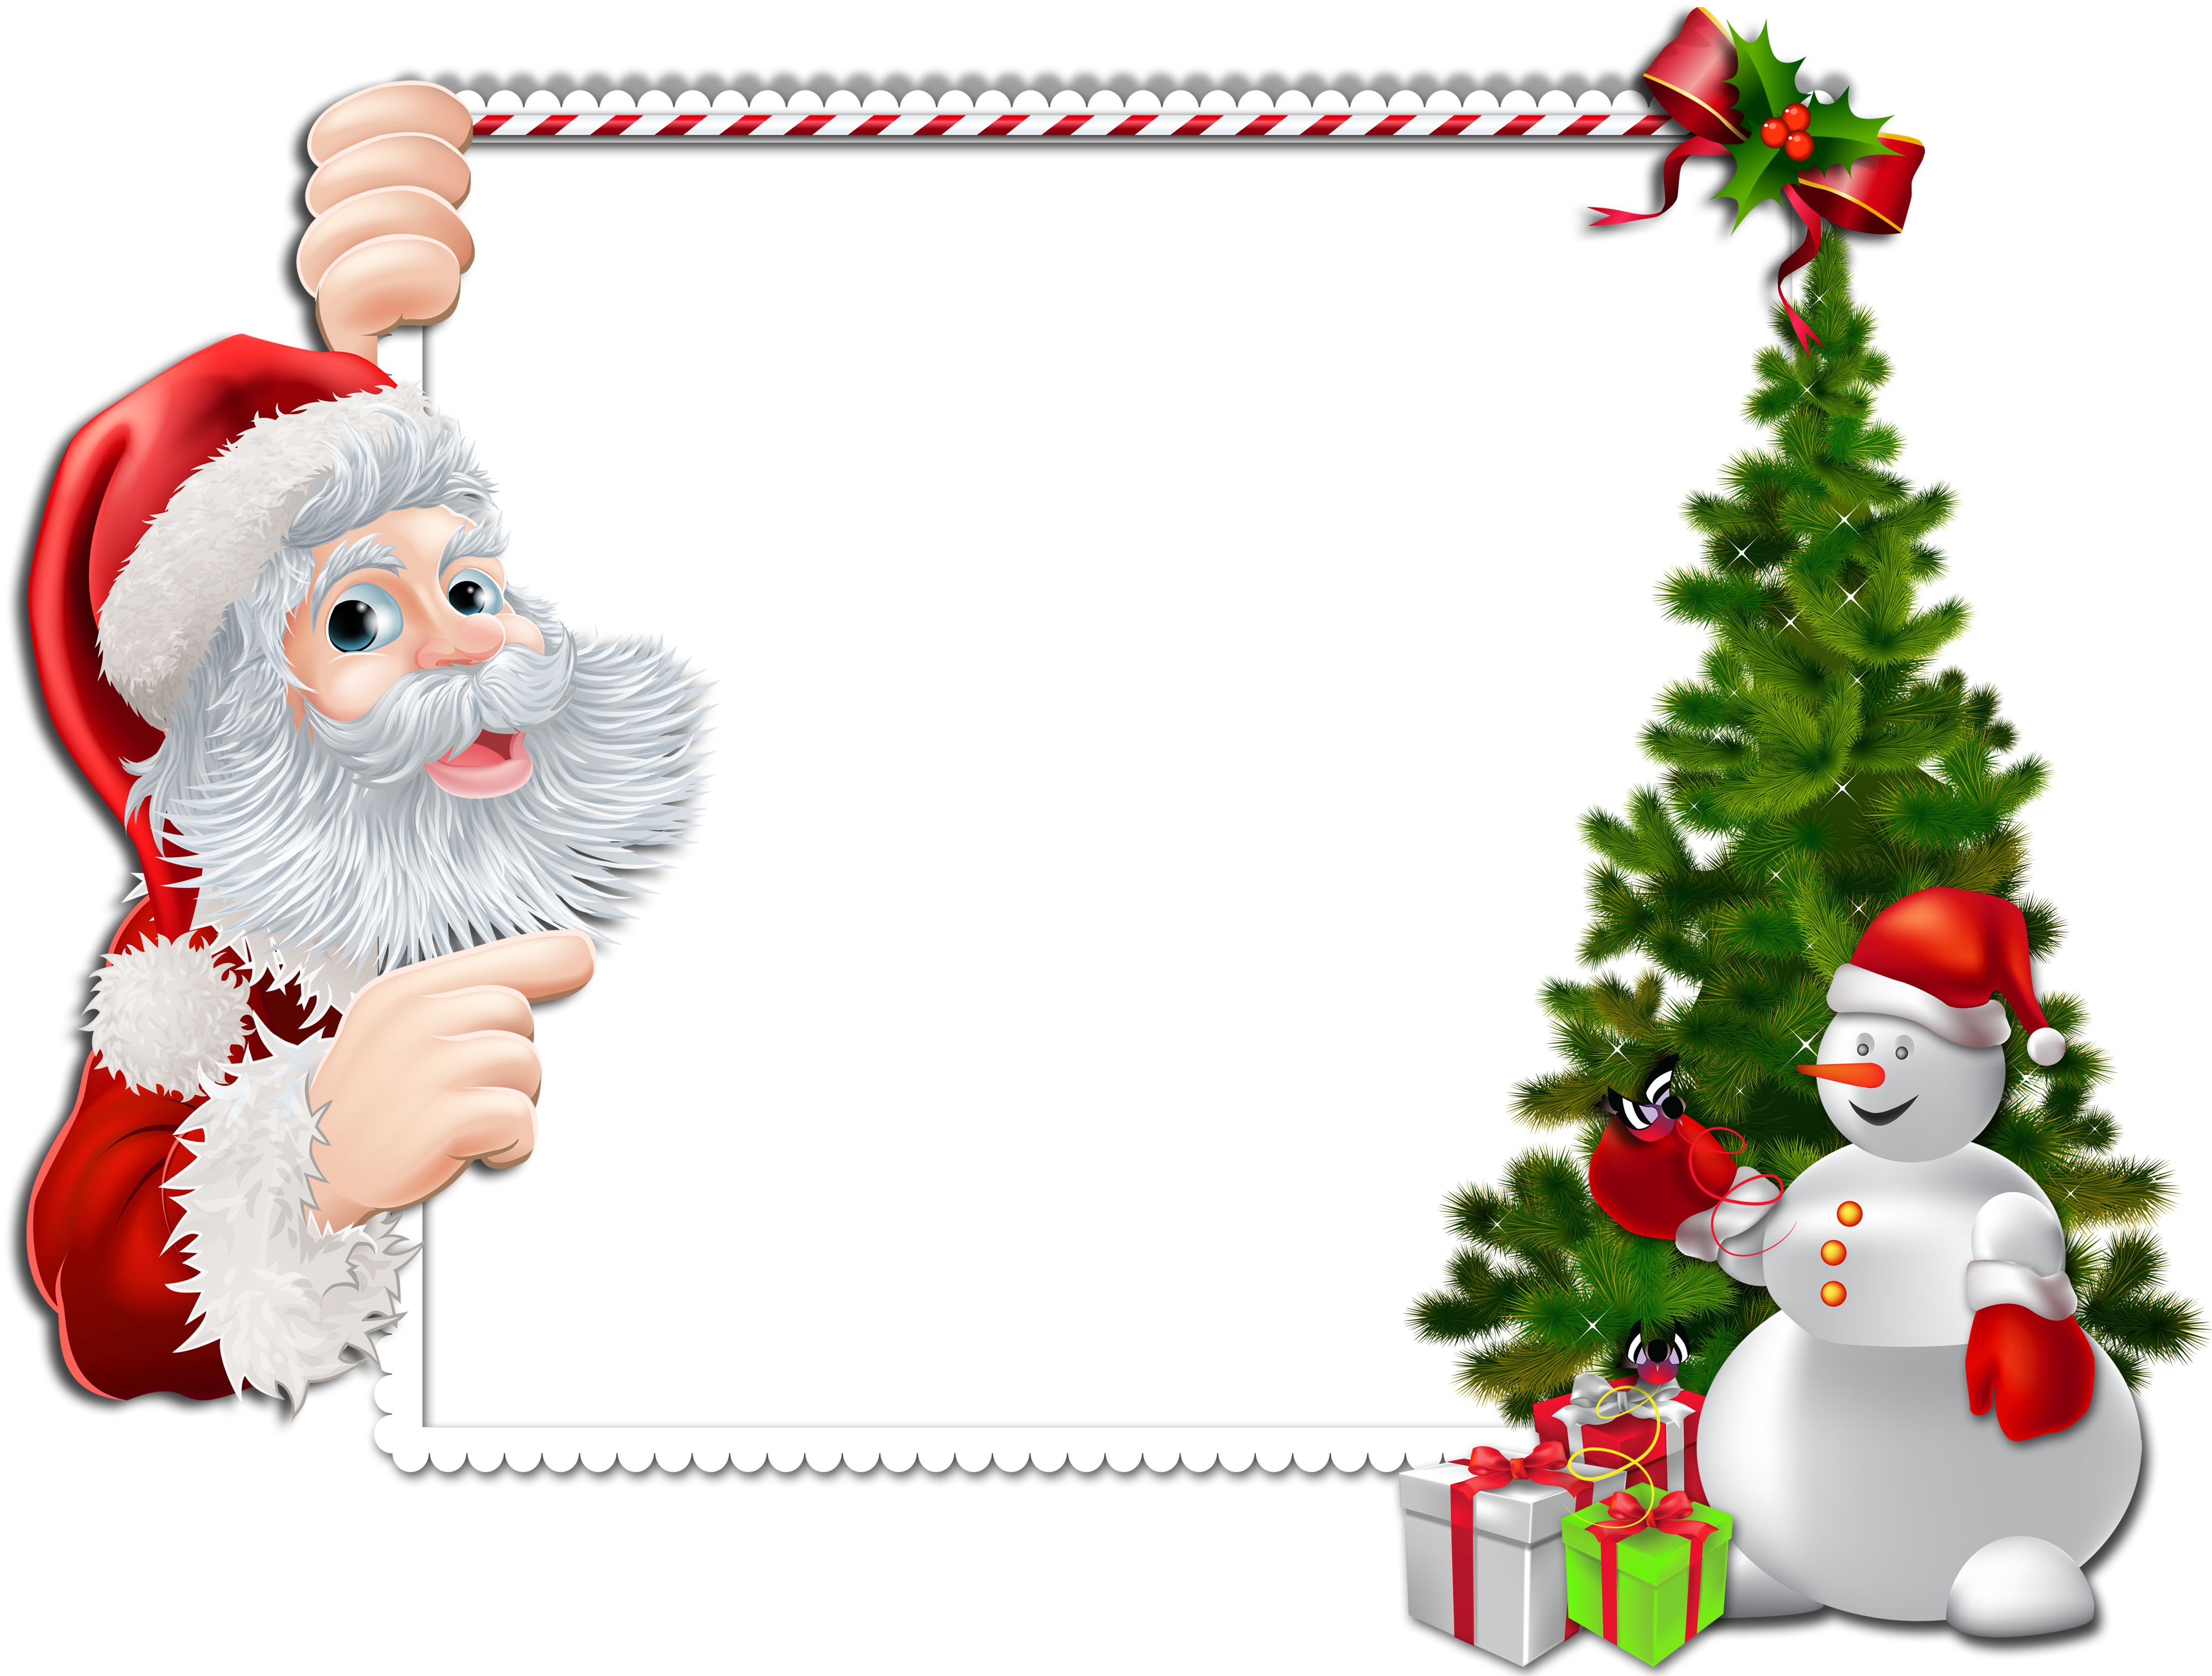 Christmas clipart frame picture freeuse stock Christmas Frame Clipart & Christmas Frame Clip Art Images ... picture freeuse stock